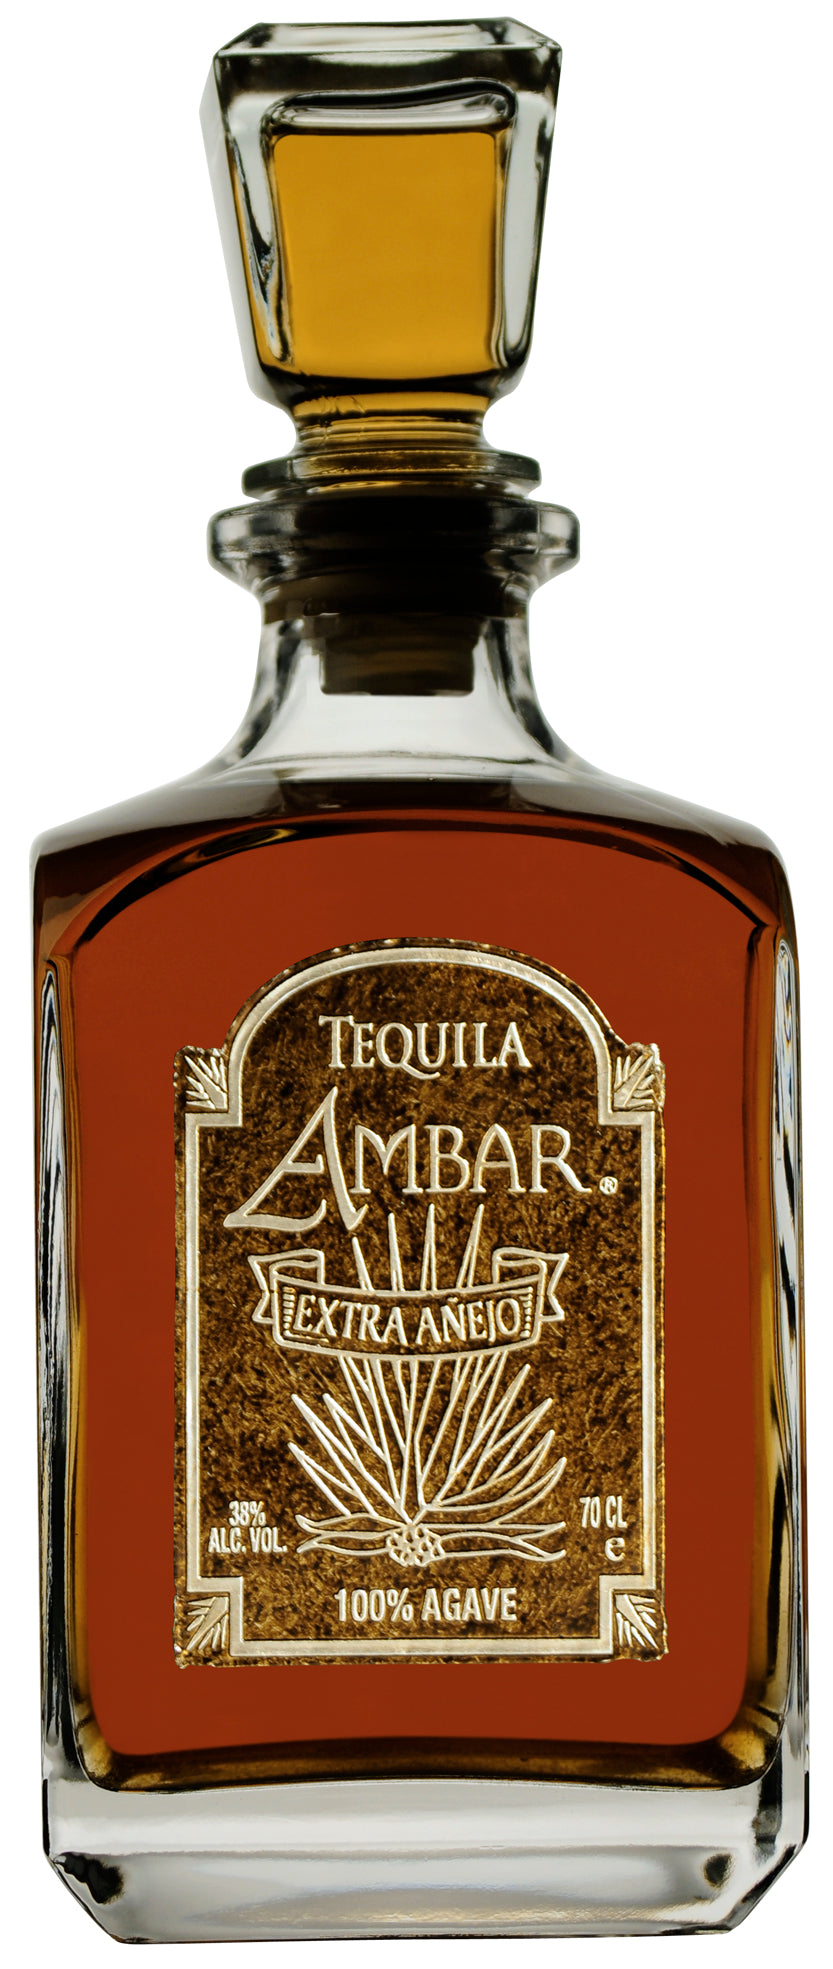 Tequila Ambar Ultra-Premium 100% Highland Agave, Extra-Anejo.